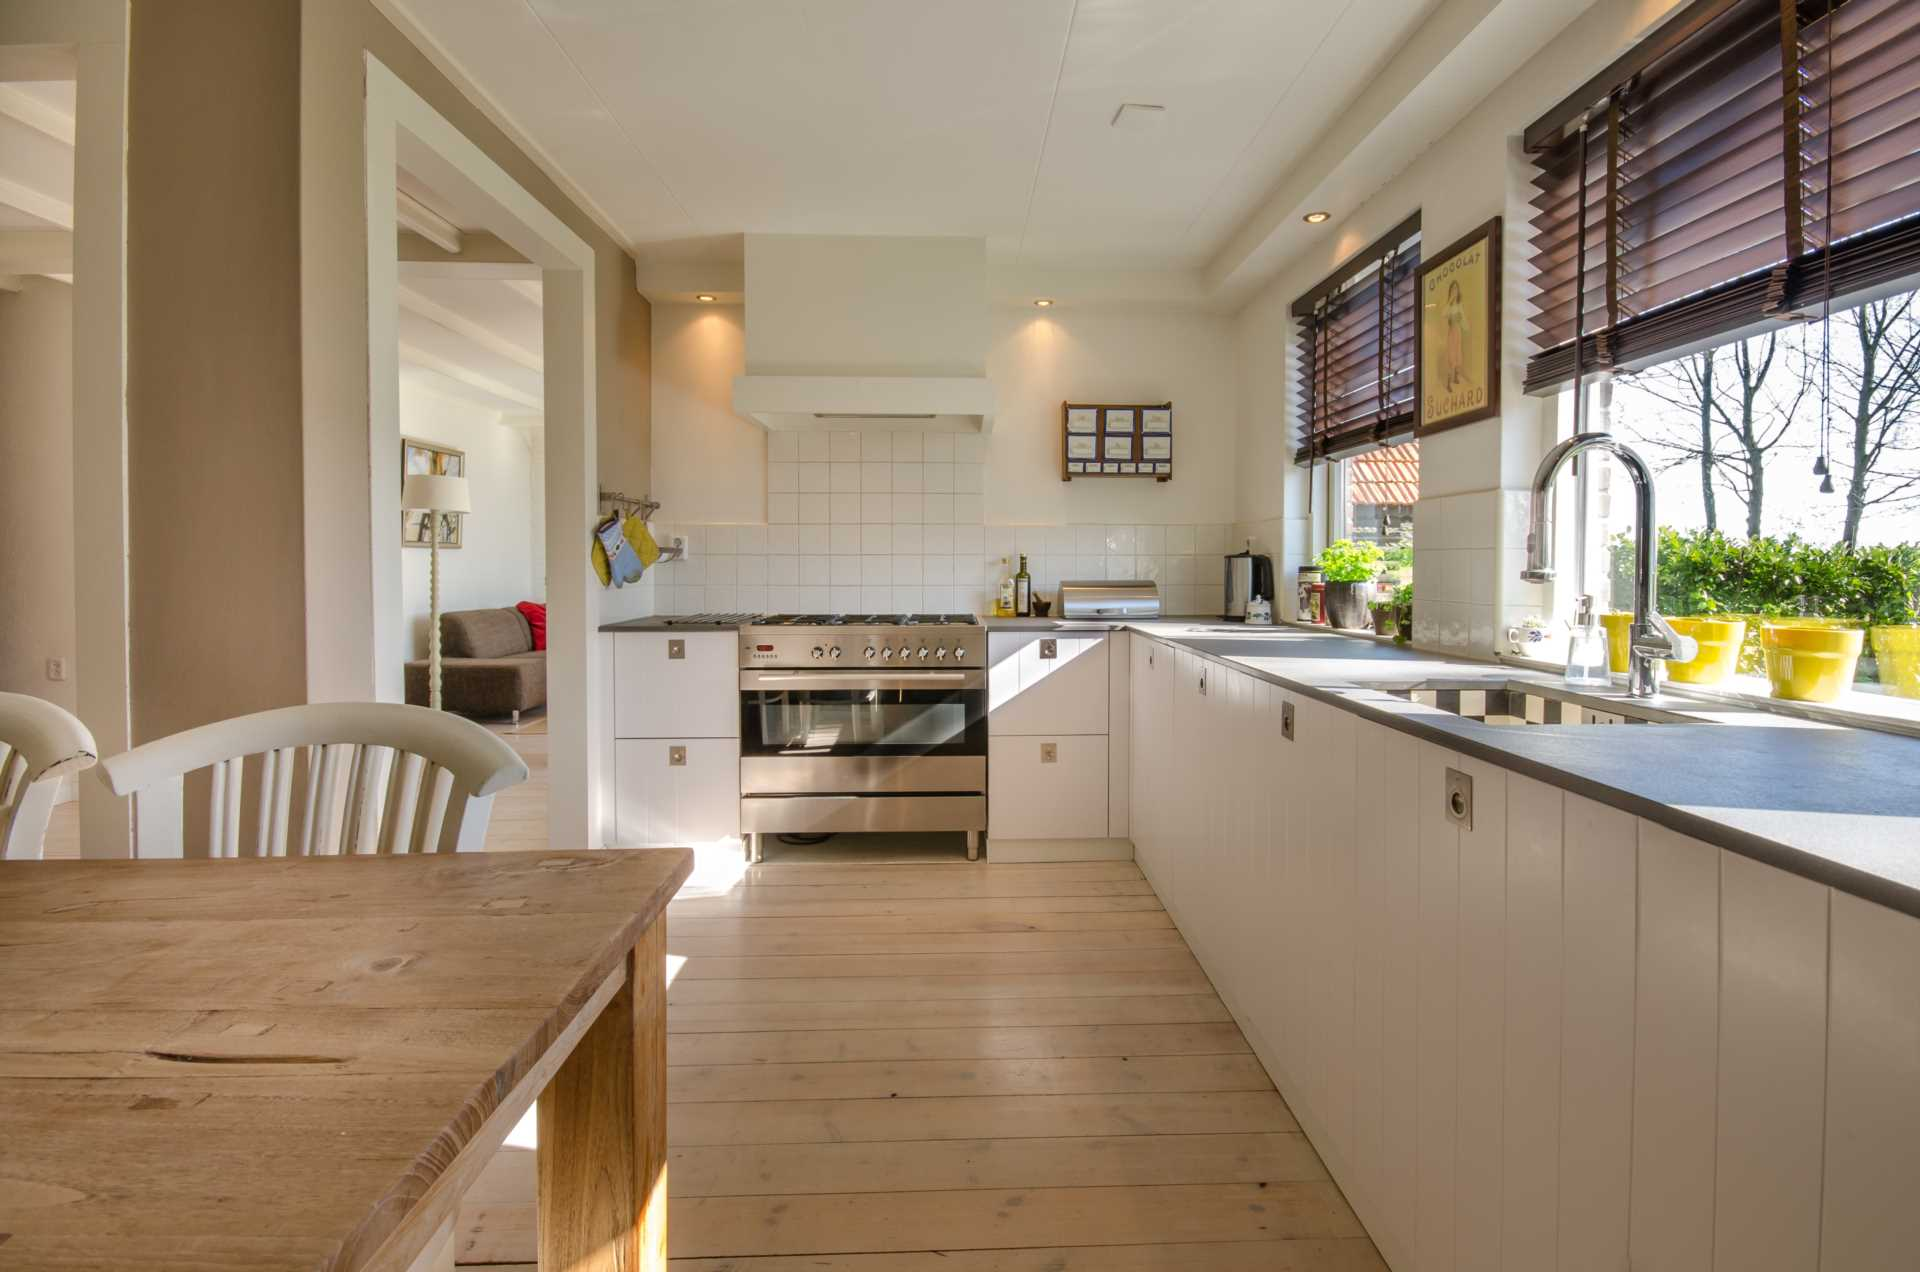 How to get your home in The Shires ready for sale – safely and successfully